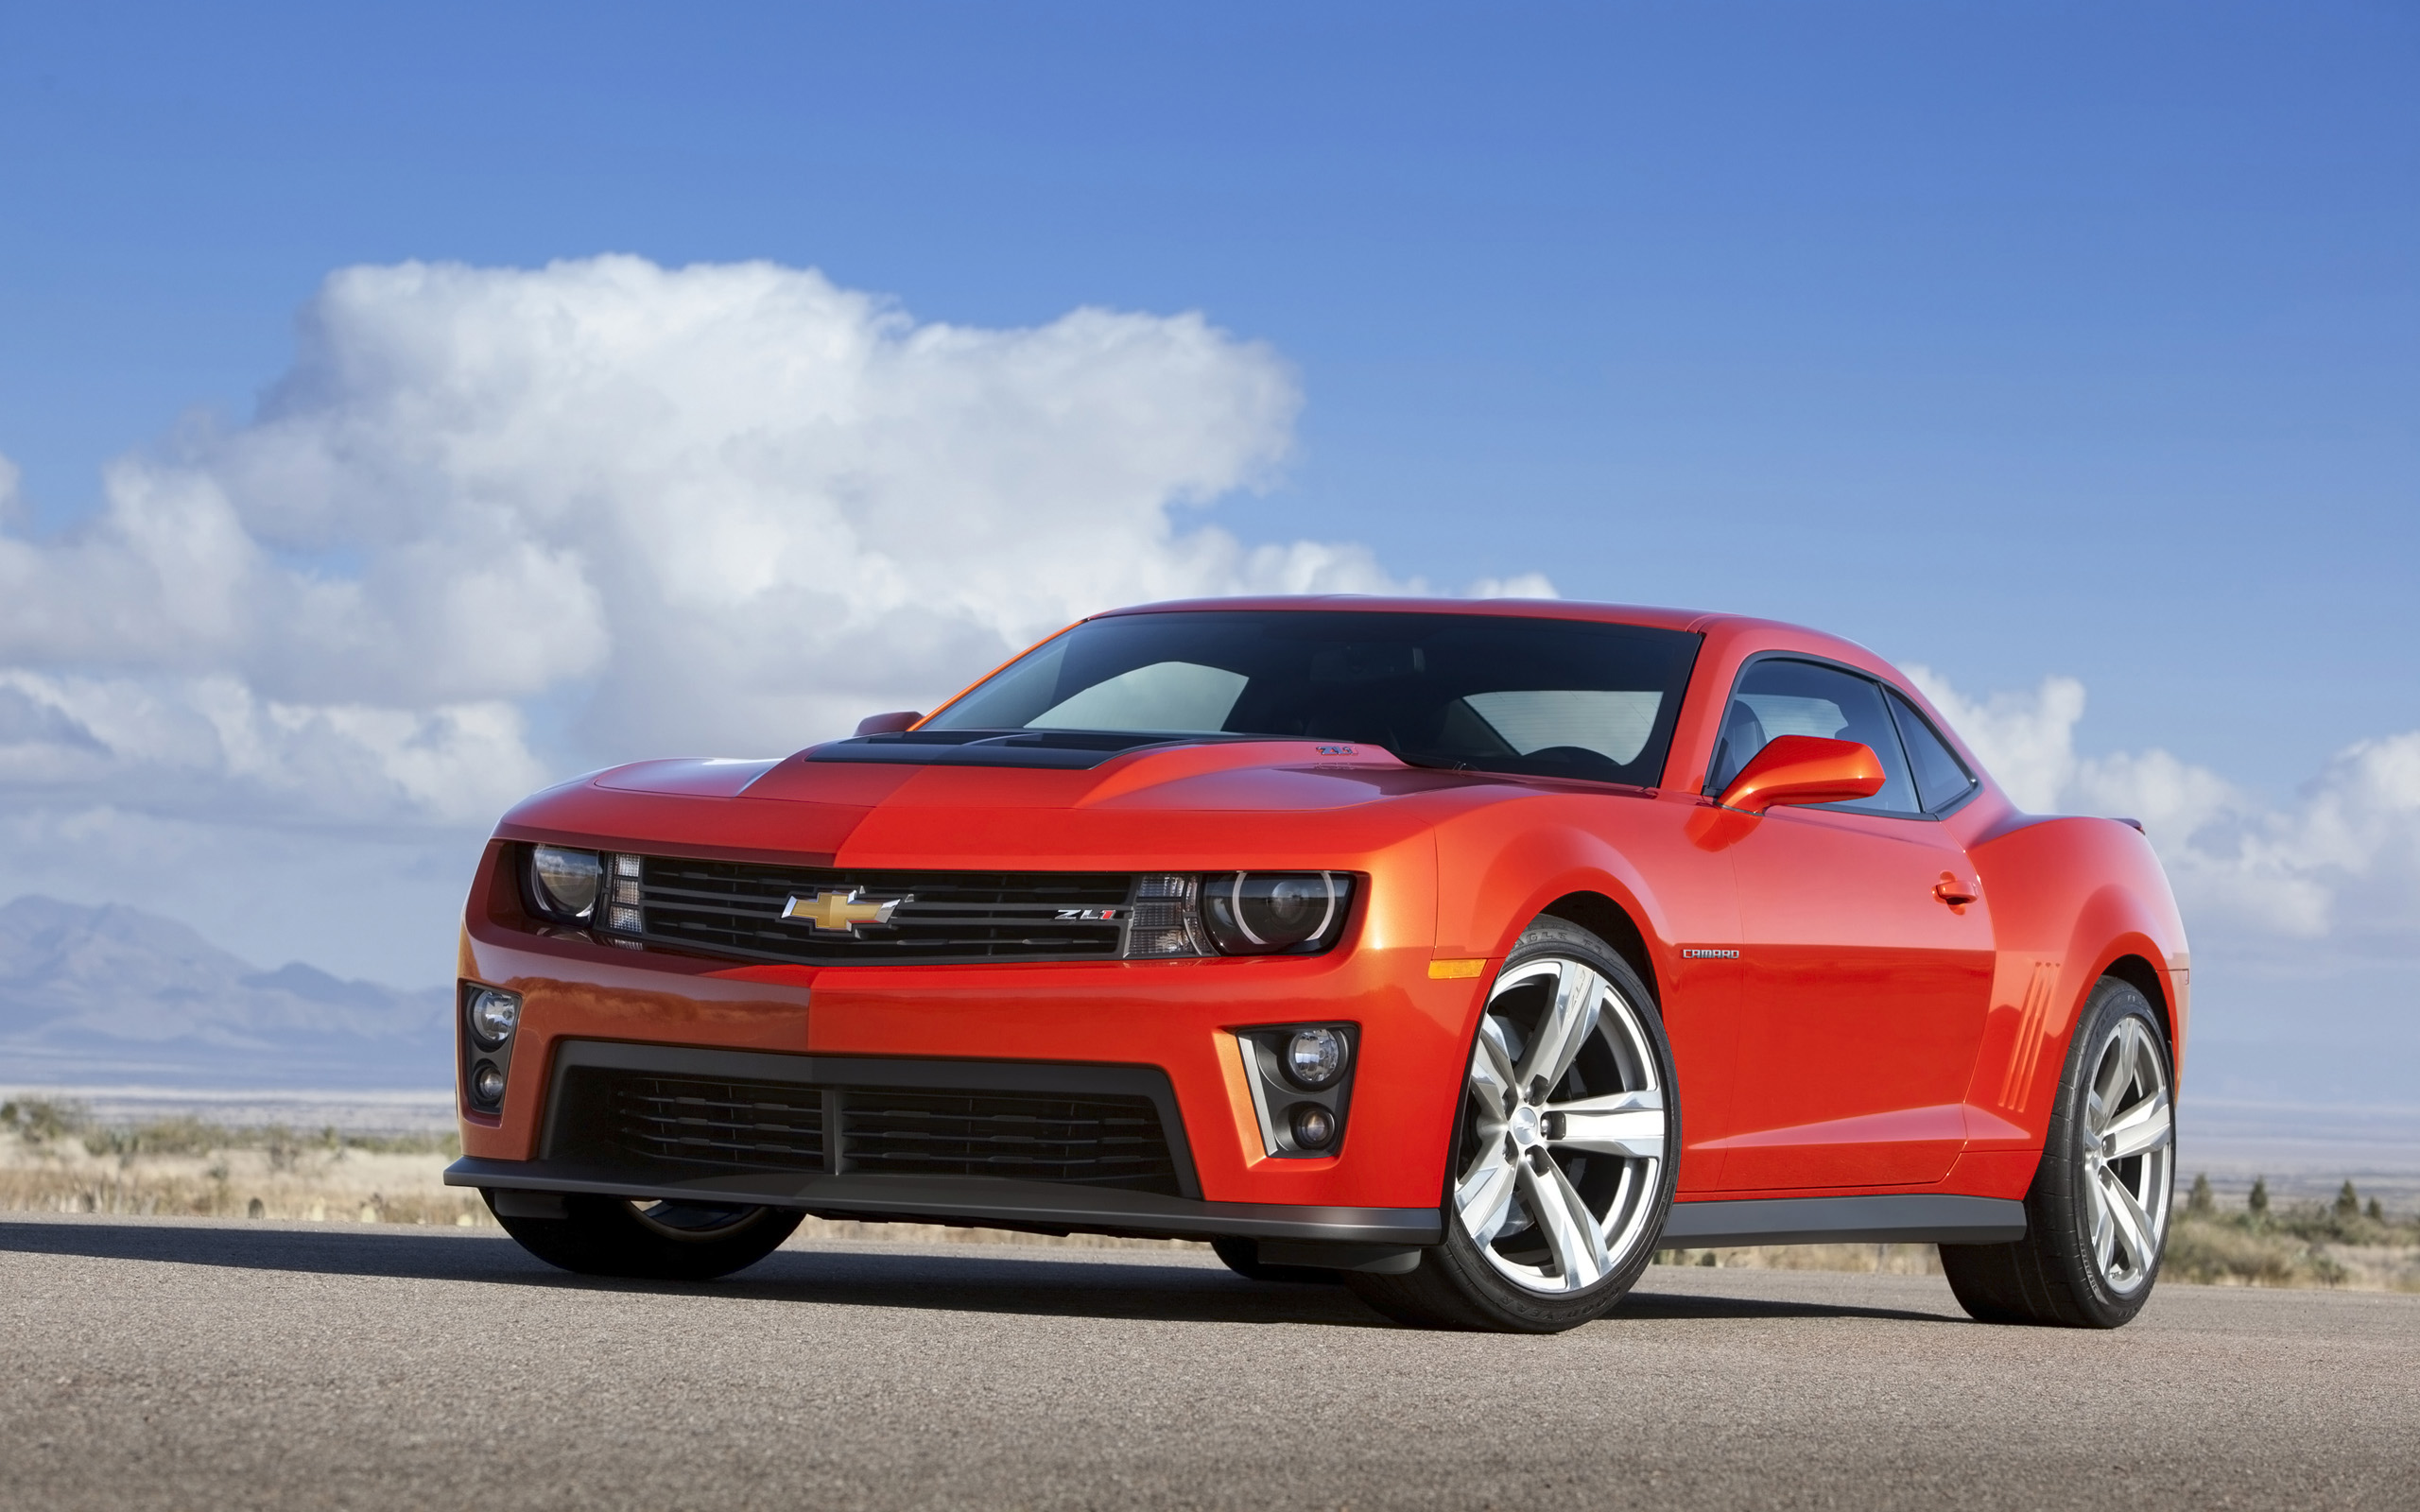 2014 Camaro Zl1 Hd Wallpapers 2014 Camaro Zl1 Pictures to 2560x1600